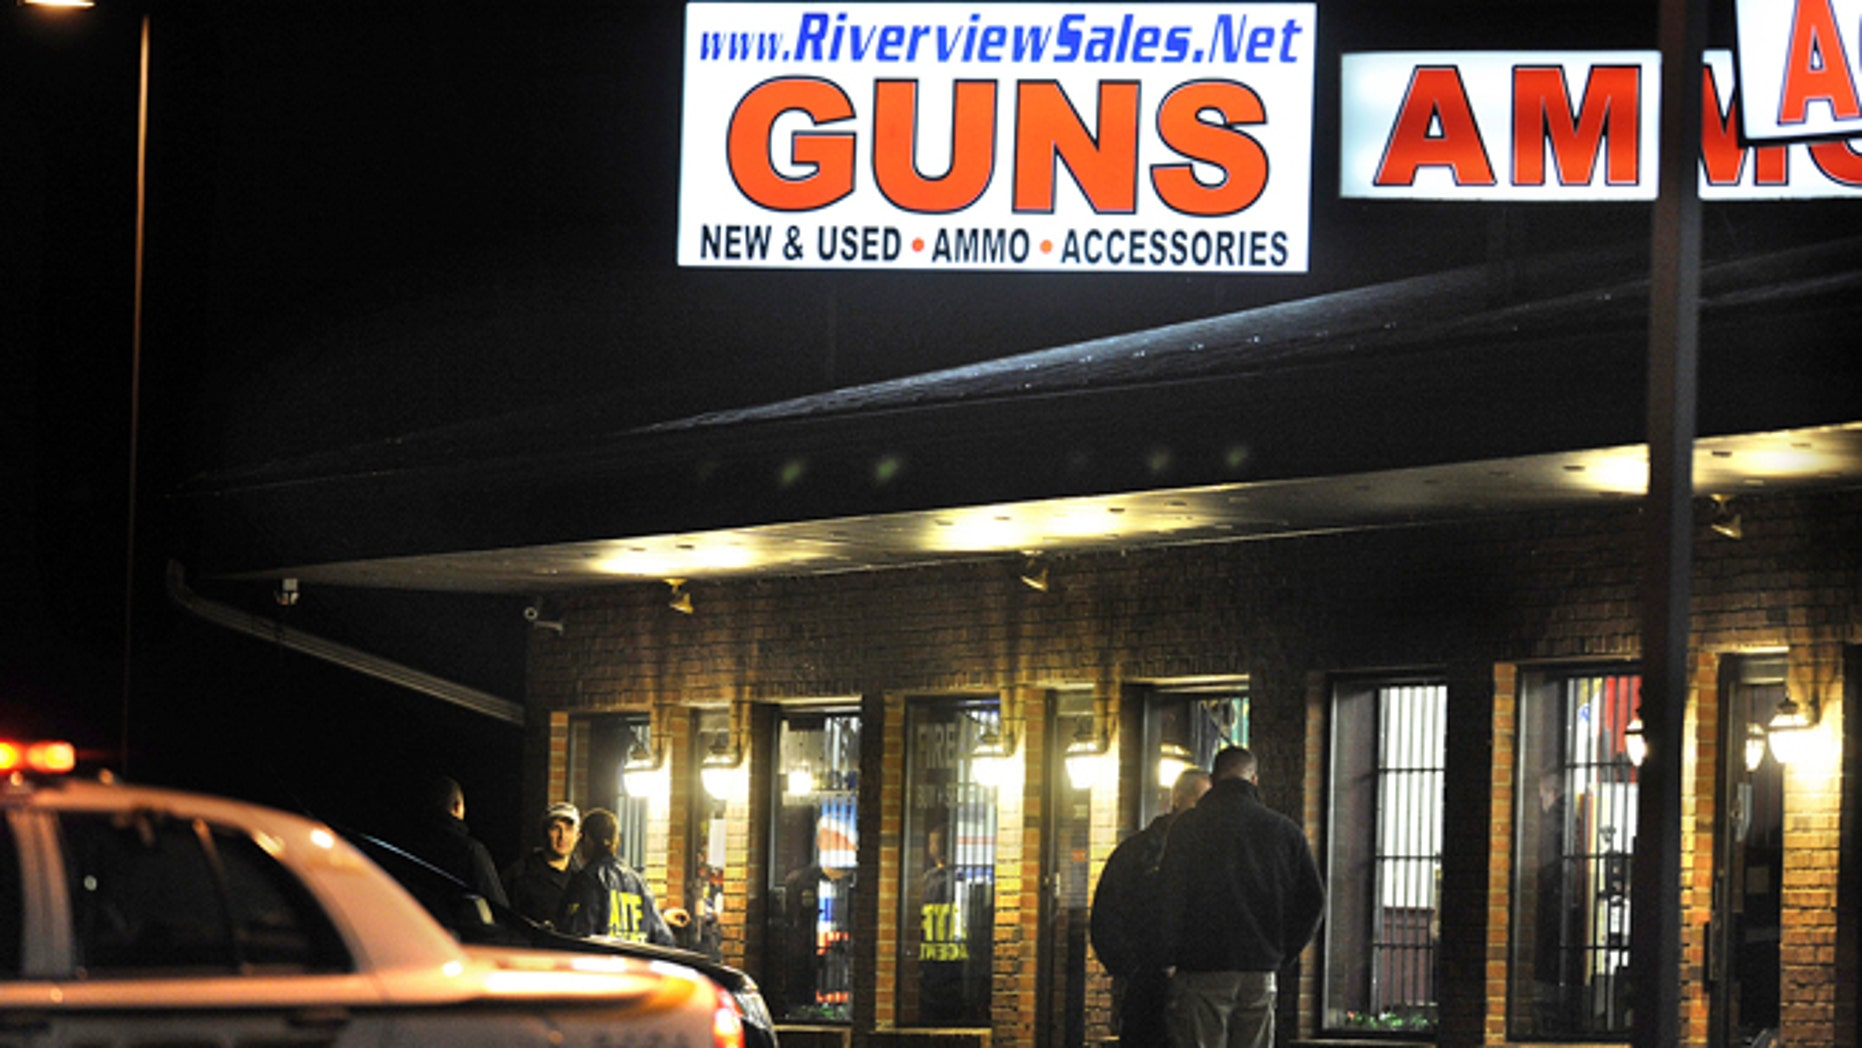 Dec. 20, 2012: In this photo, law enforcement officials stand outside Riverview Gun Sales, as authorities raid the store in East Windsor, Conn.